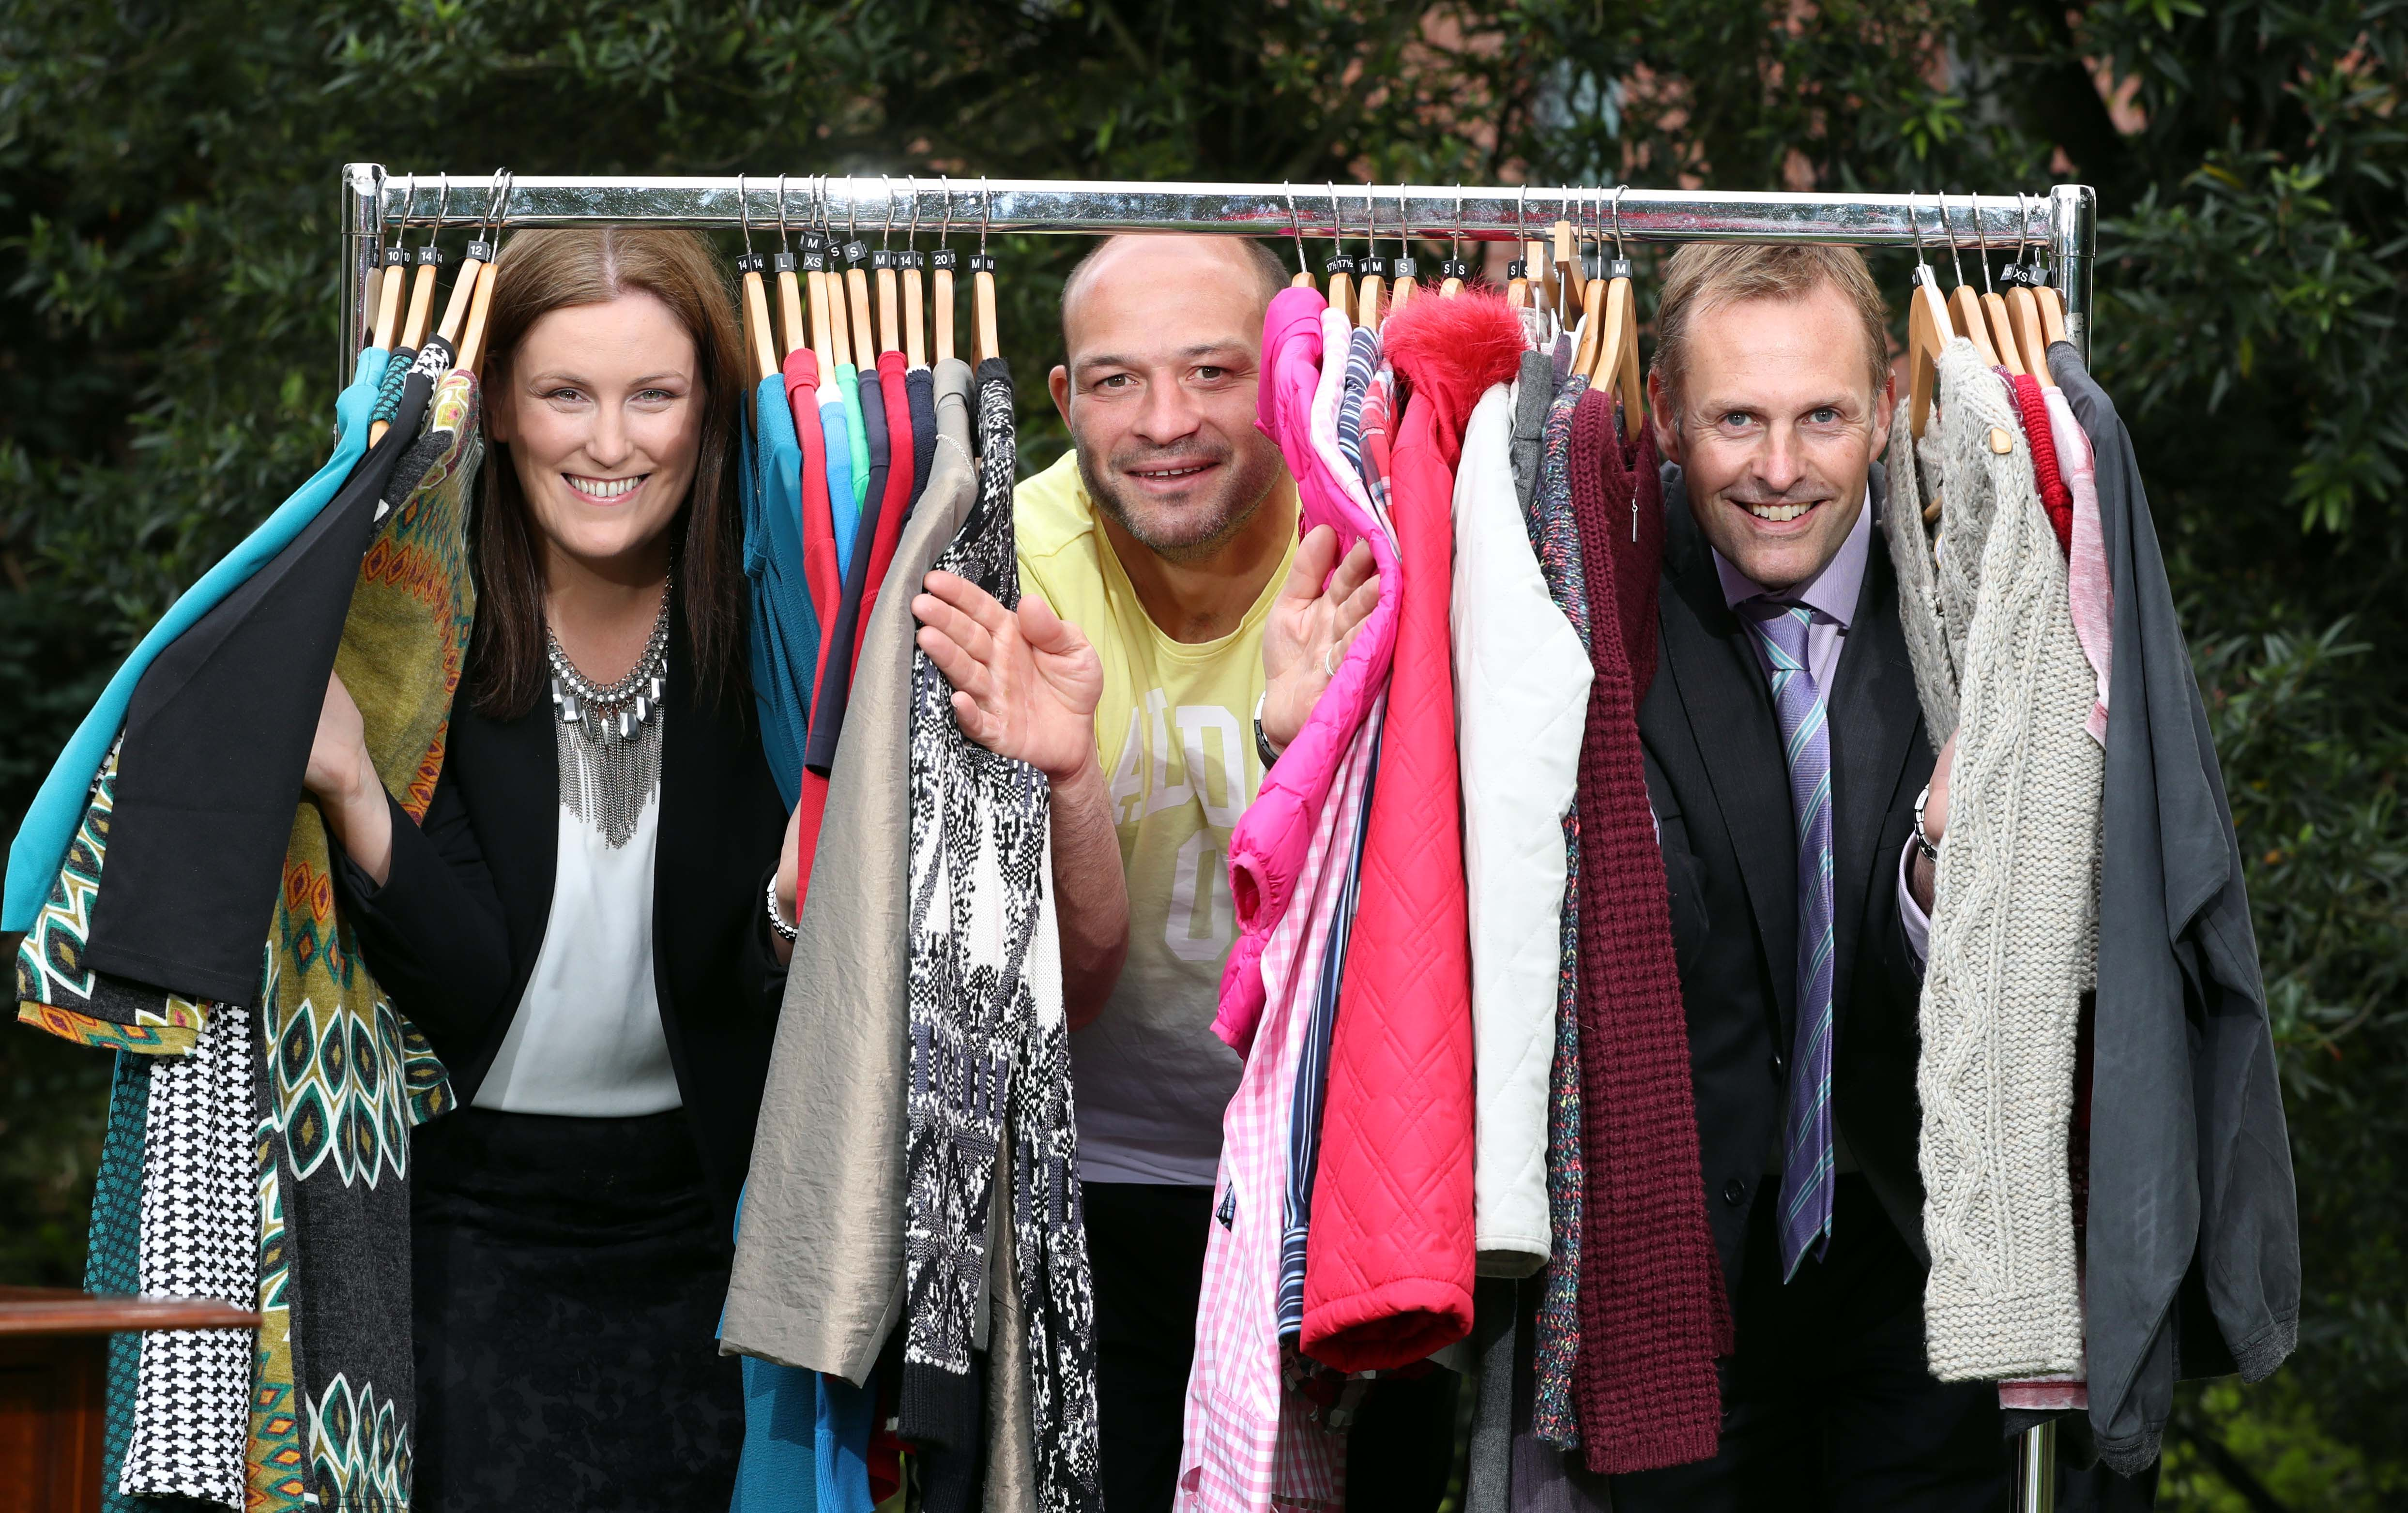 Press Release Image Press Eye Belfast - Northern Ireland Tuesday 27th September 2016 Photographer William Cherry / Press Eye 49% of people surveyed in Ireland wear just half of the clothes in their wardrobe on a regular basis while 25% have six or more items in their wardrobe that they have never worn once, according to a survey commissioned by communications company BT Ireland to launch BT Shop for Change in aid of the Irish Cancer Society. The survey revealed that the nation still loves the catharsis of a good clear-out. 60% de-clutter at least twice a year, while 89% claim a clear-out makes them feel either good or brilliant. Charity shops are benefiting, with 80% of people donating their unwanted items to charity. On October 13, over 110 BT Ireland employees will take over nine Irish Cancer Society charity shops in Dublin, Galway and Cork as part of BT Shop for Change, designed to raise crucial funds for cancer research and care. The campaign has raised in excess of Û300,000 over the last five years. Pictured from left are: Oonagh OÕMahony, Area Retail Manager, Irish Cancer Society, Rory Best, Ireland rugby captain and BT Shop for Change ambassador and Mark Hopkins, Director of Sales, BT Ireland. For more information on the campaign and participating stores, visit www.btireland.com/ShopforChange